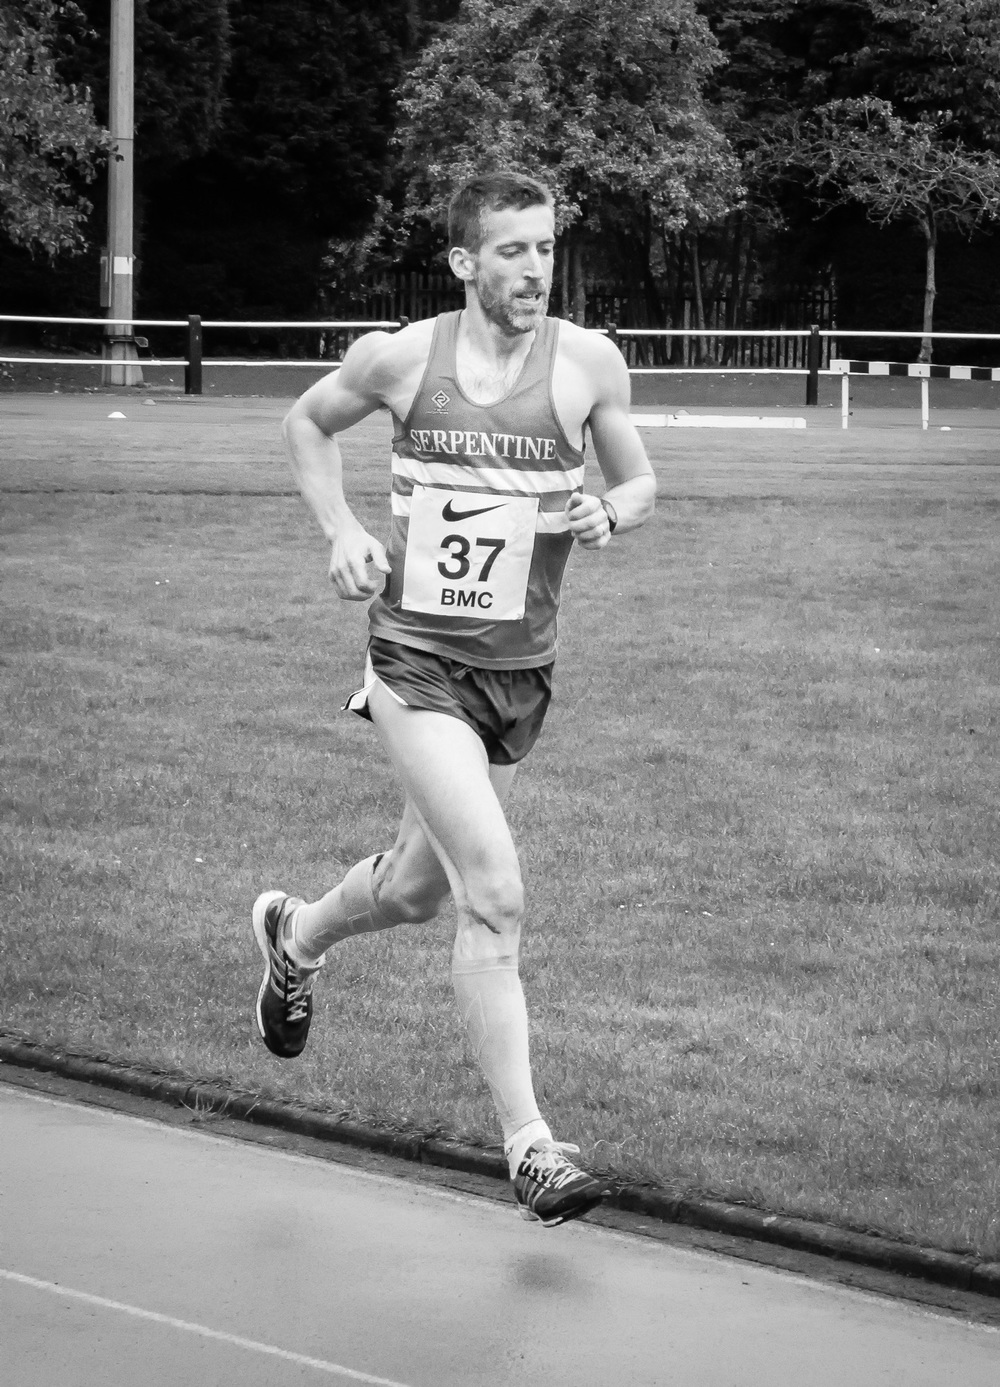 Running the Stretford 10,000 in 2014. I had a good race and finished in 32.00.01 -I was sure the clock was 31.59.99 when I crossed the line...